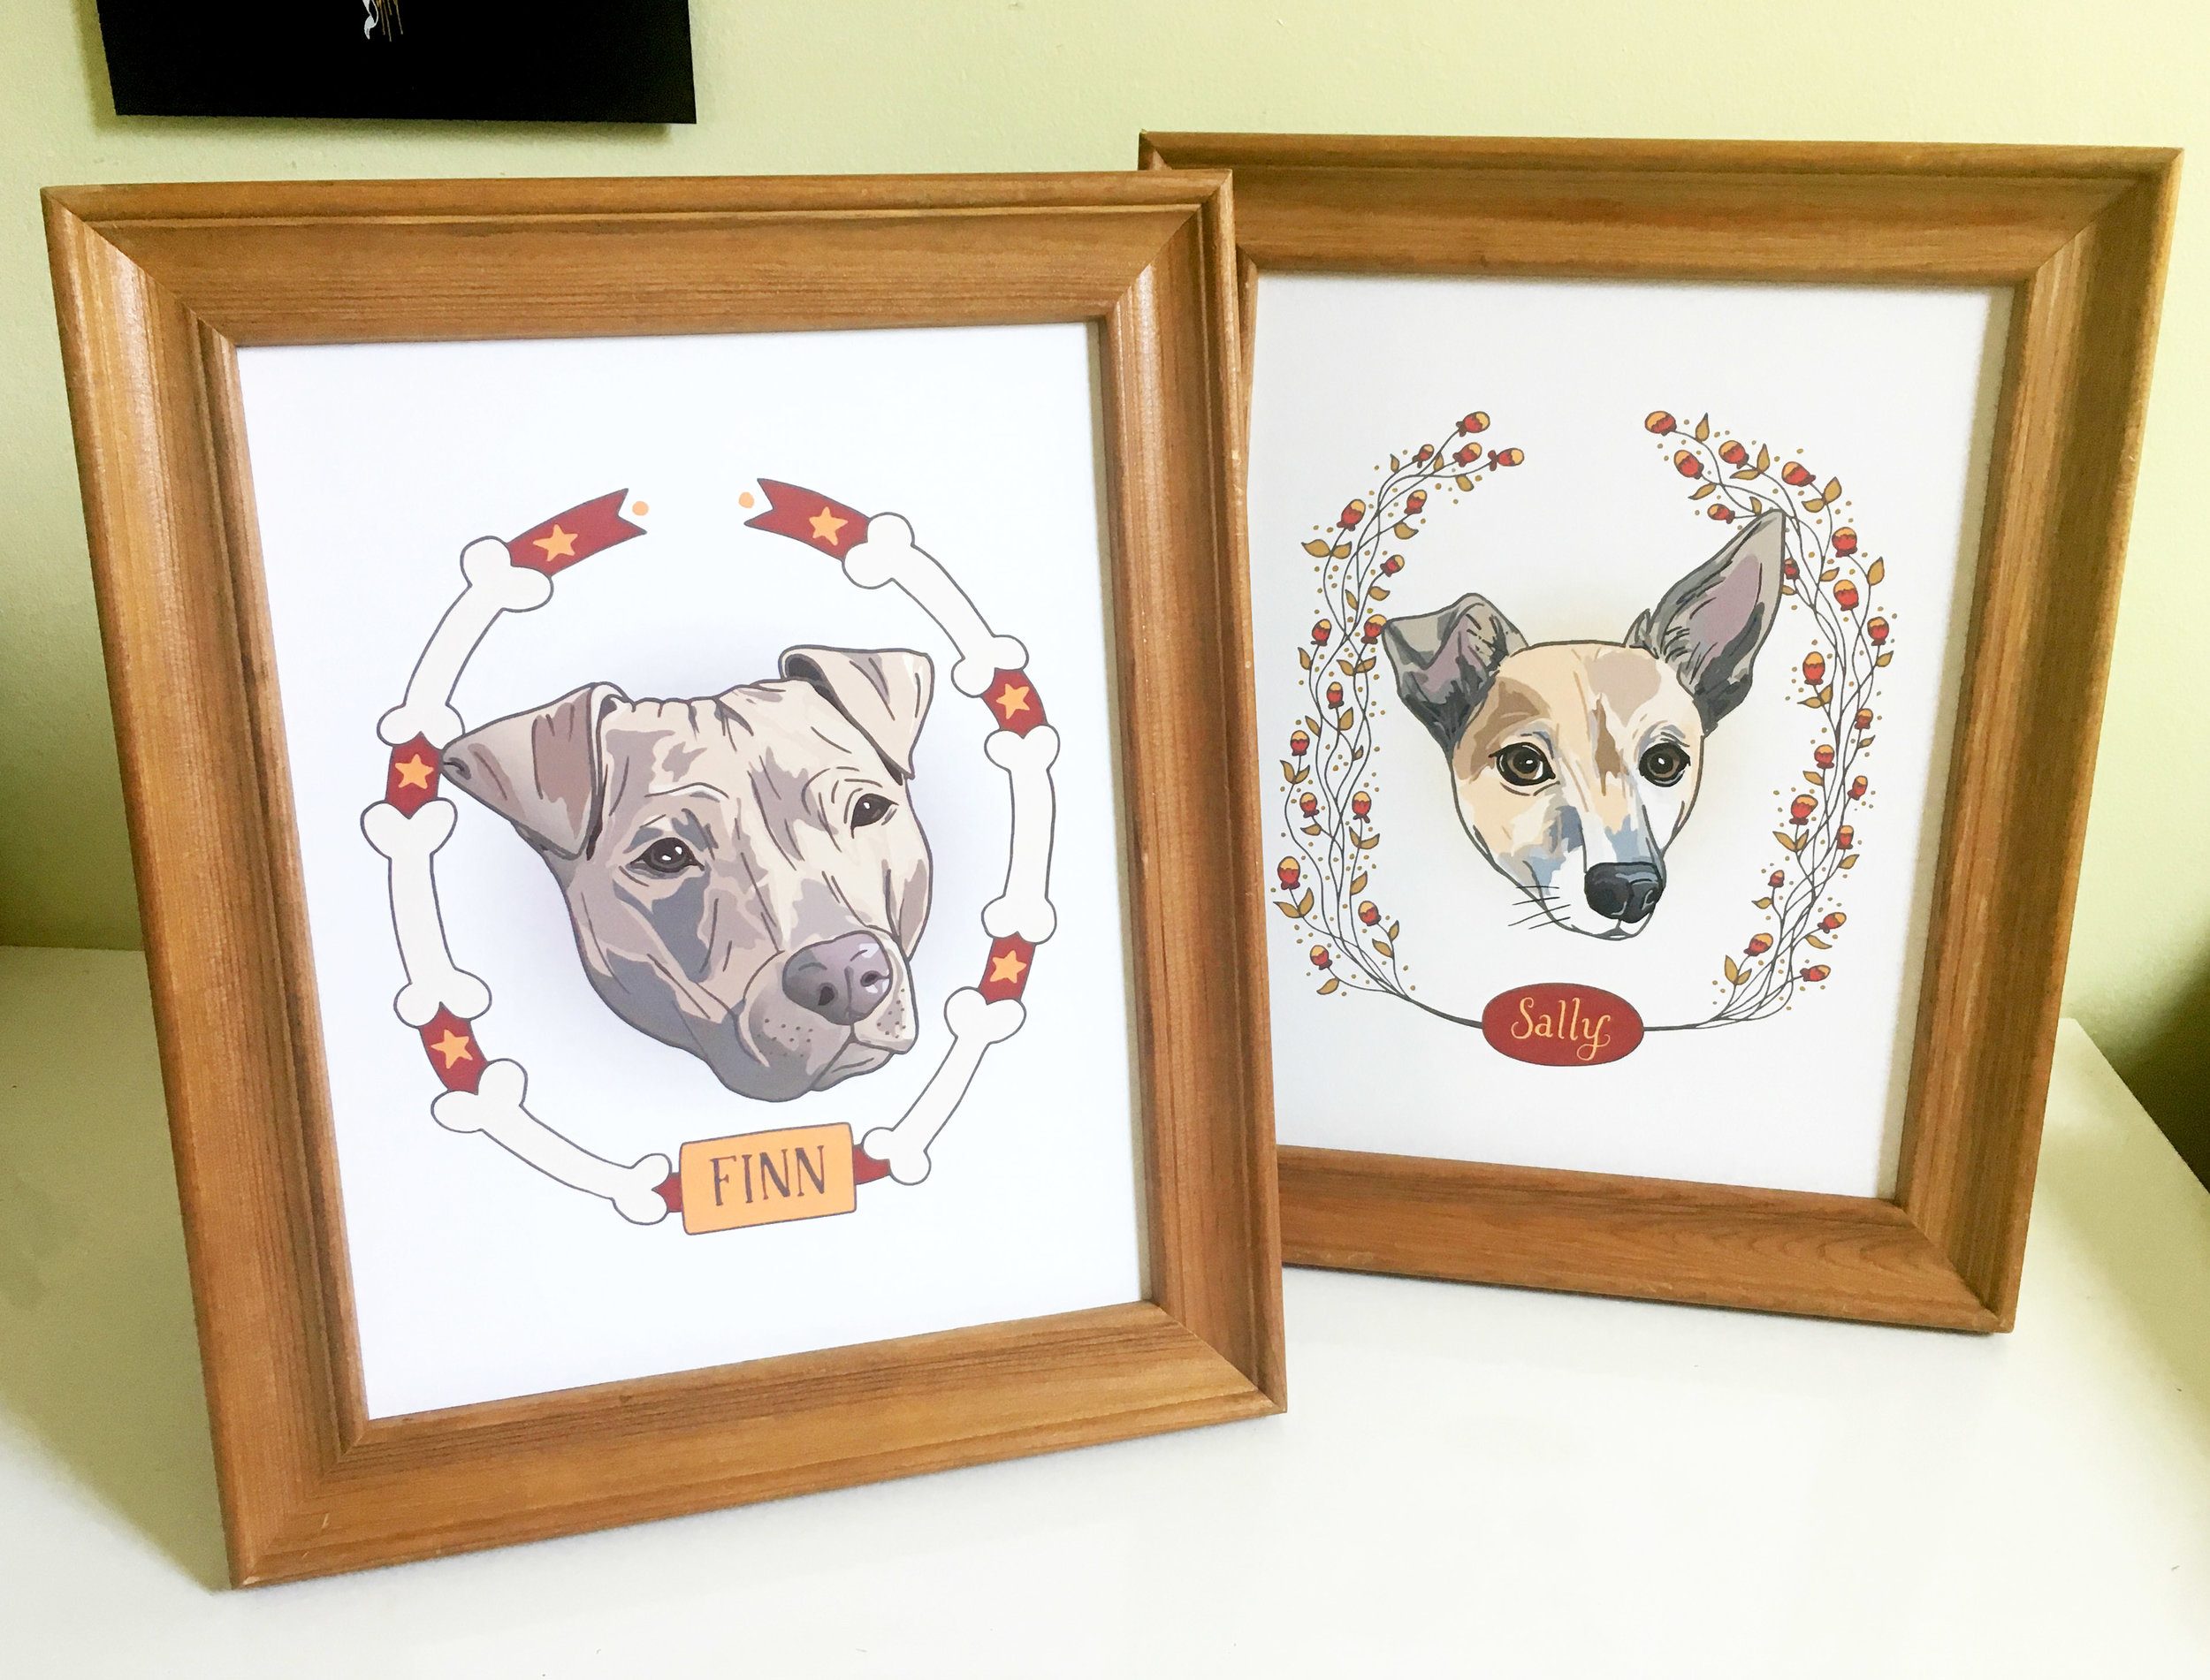 Final printed pieces in frames.